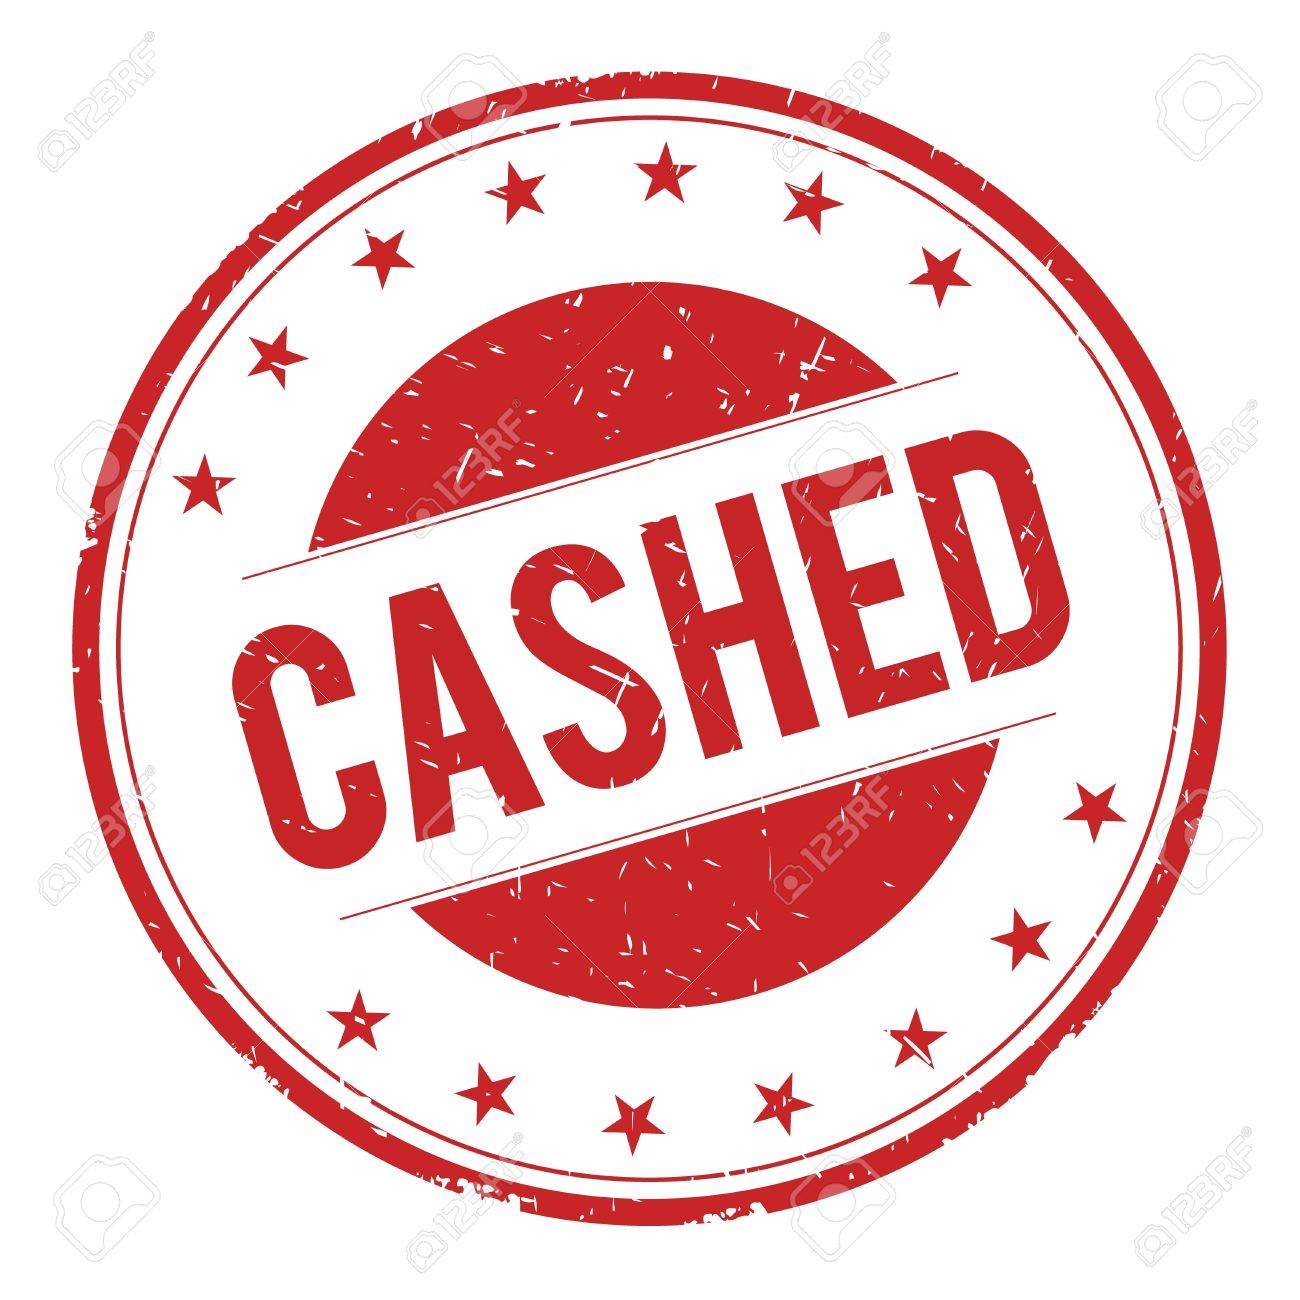 CASHED stamp sign text word logo red. Stock Photo - 67602143